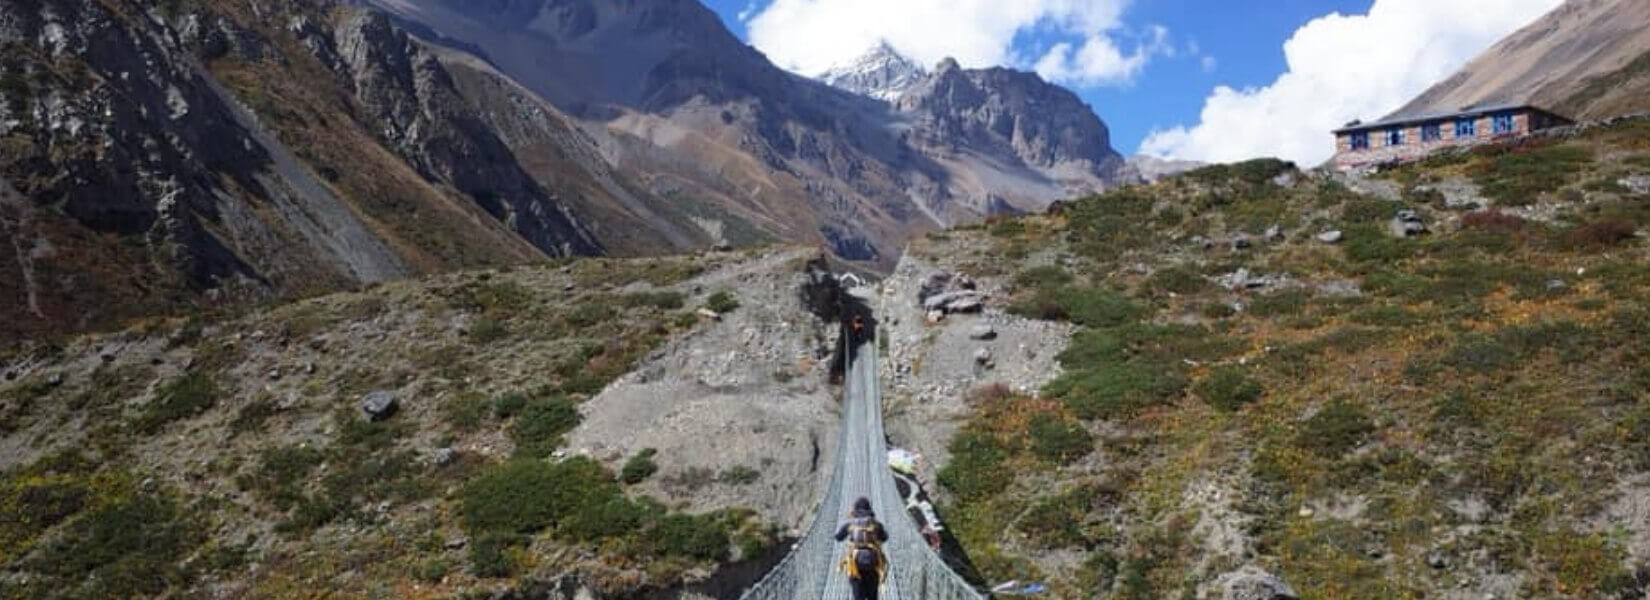 Annapurna Base Camp Trekking Region